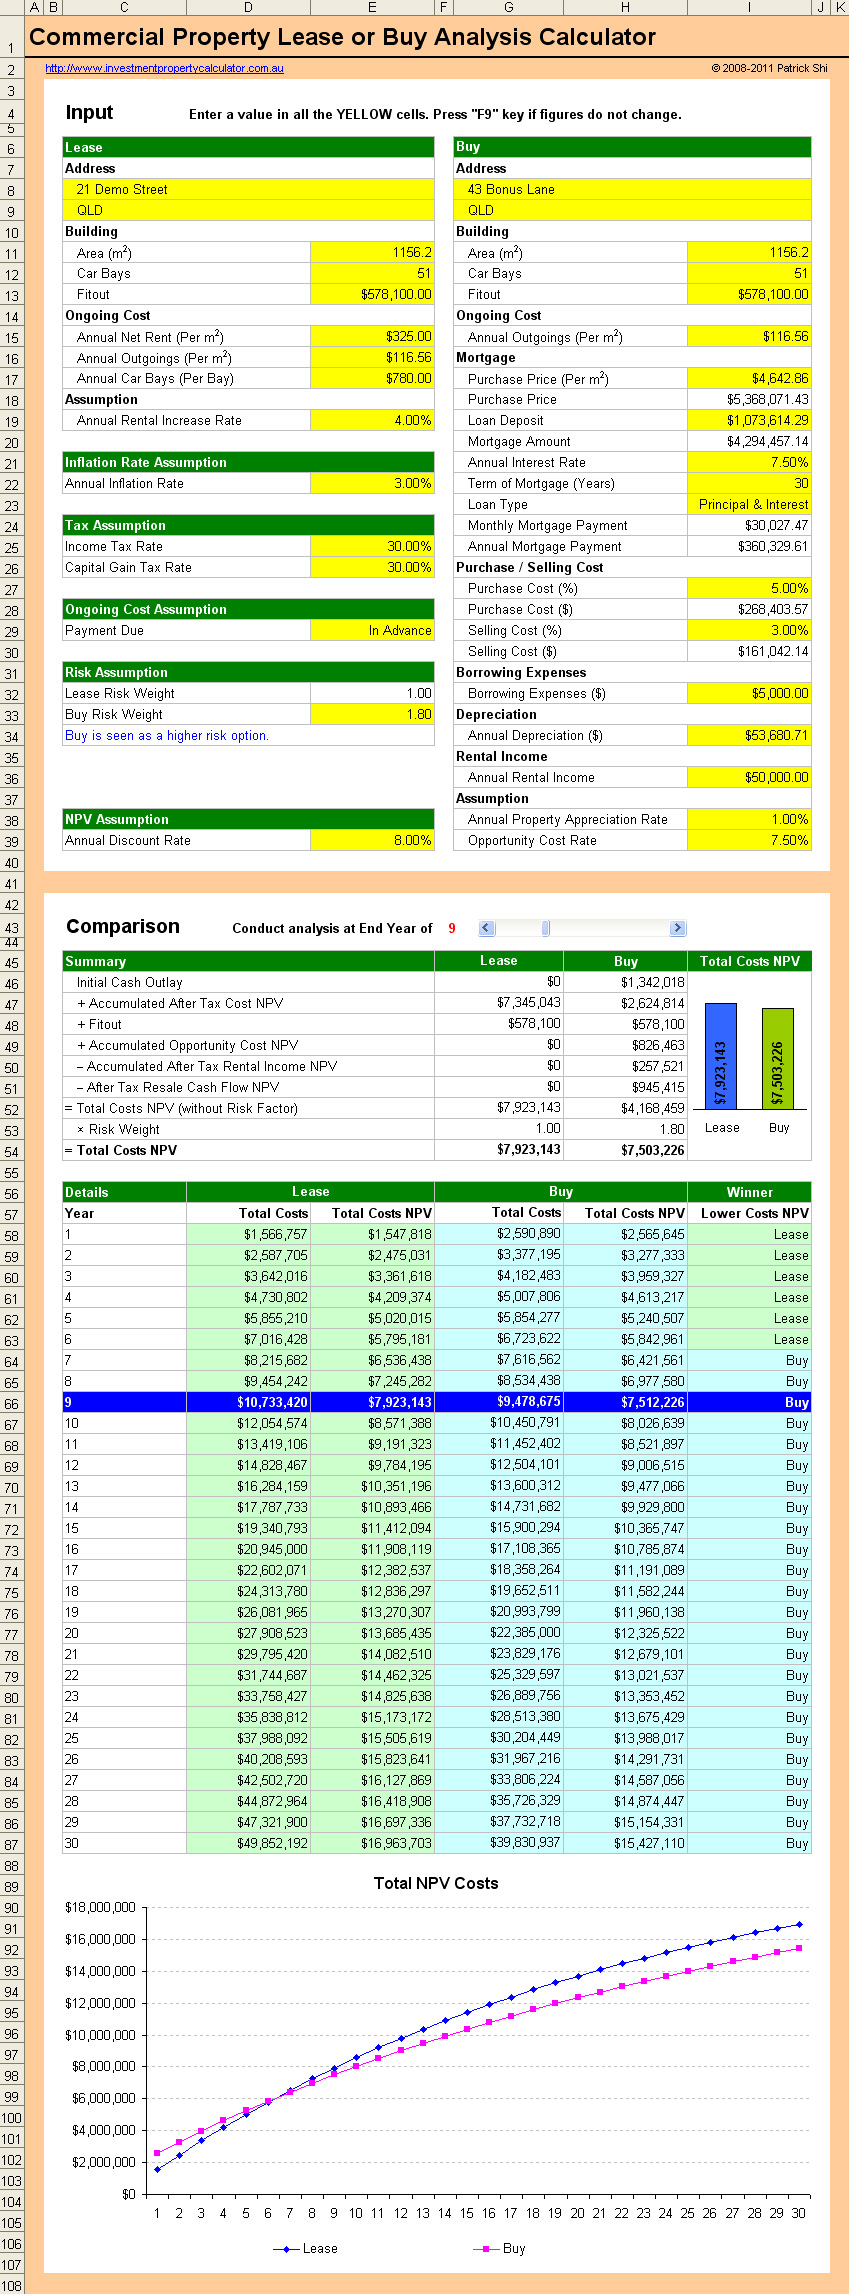 Commercial Real Estate Lease Vs Buy Spreadsheet With Commercial Property Lease Or Buy Analysis Calculator